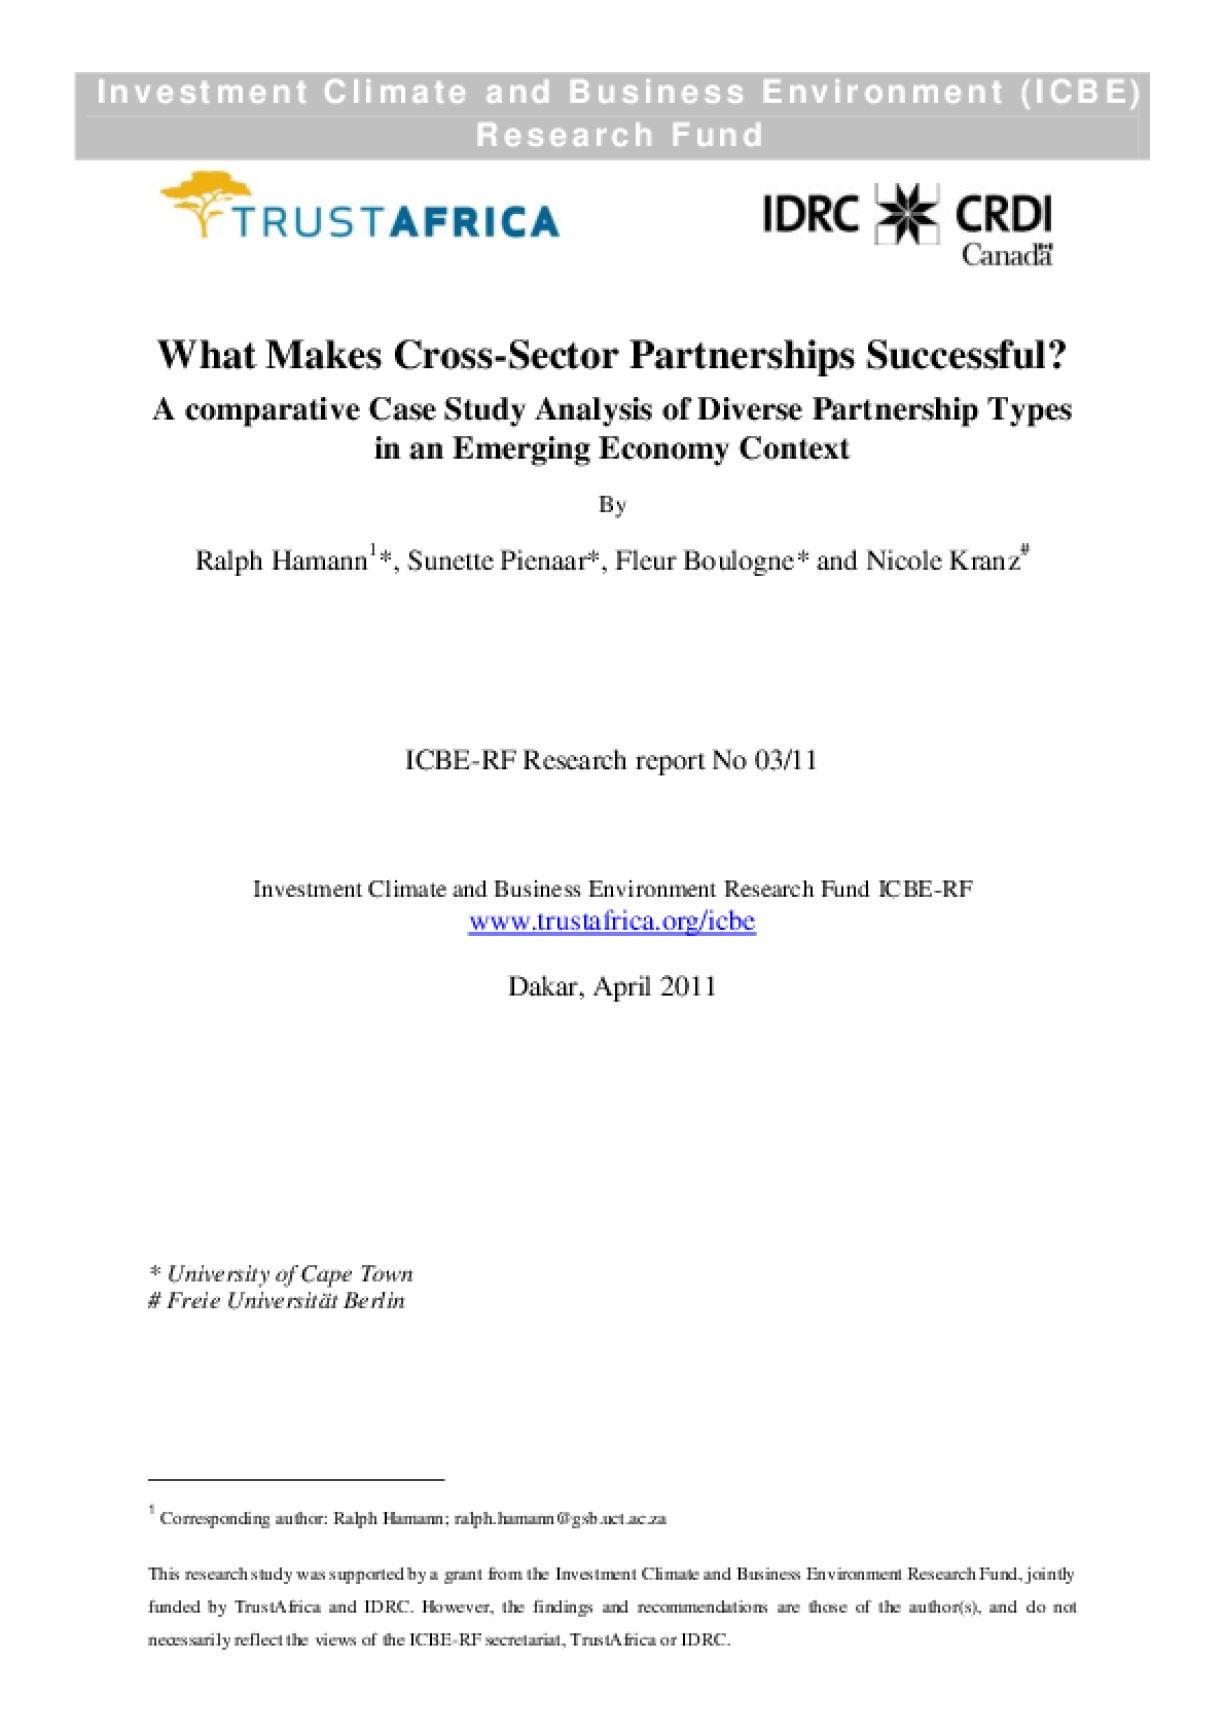 What Makes Cross-Sector Partnerships Successful? A Comparative Case Study Analysis of Diverse Partnership Types in an Emerging Economy Context